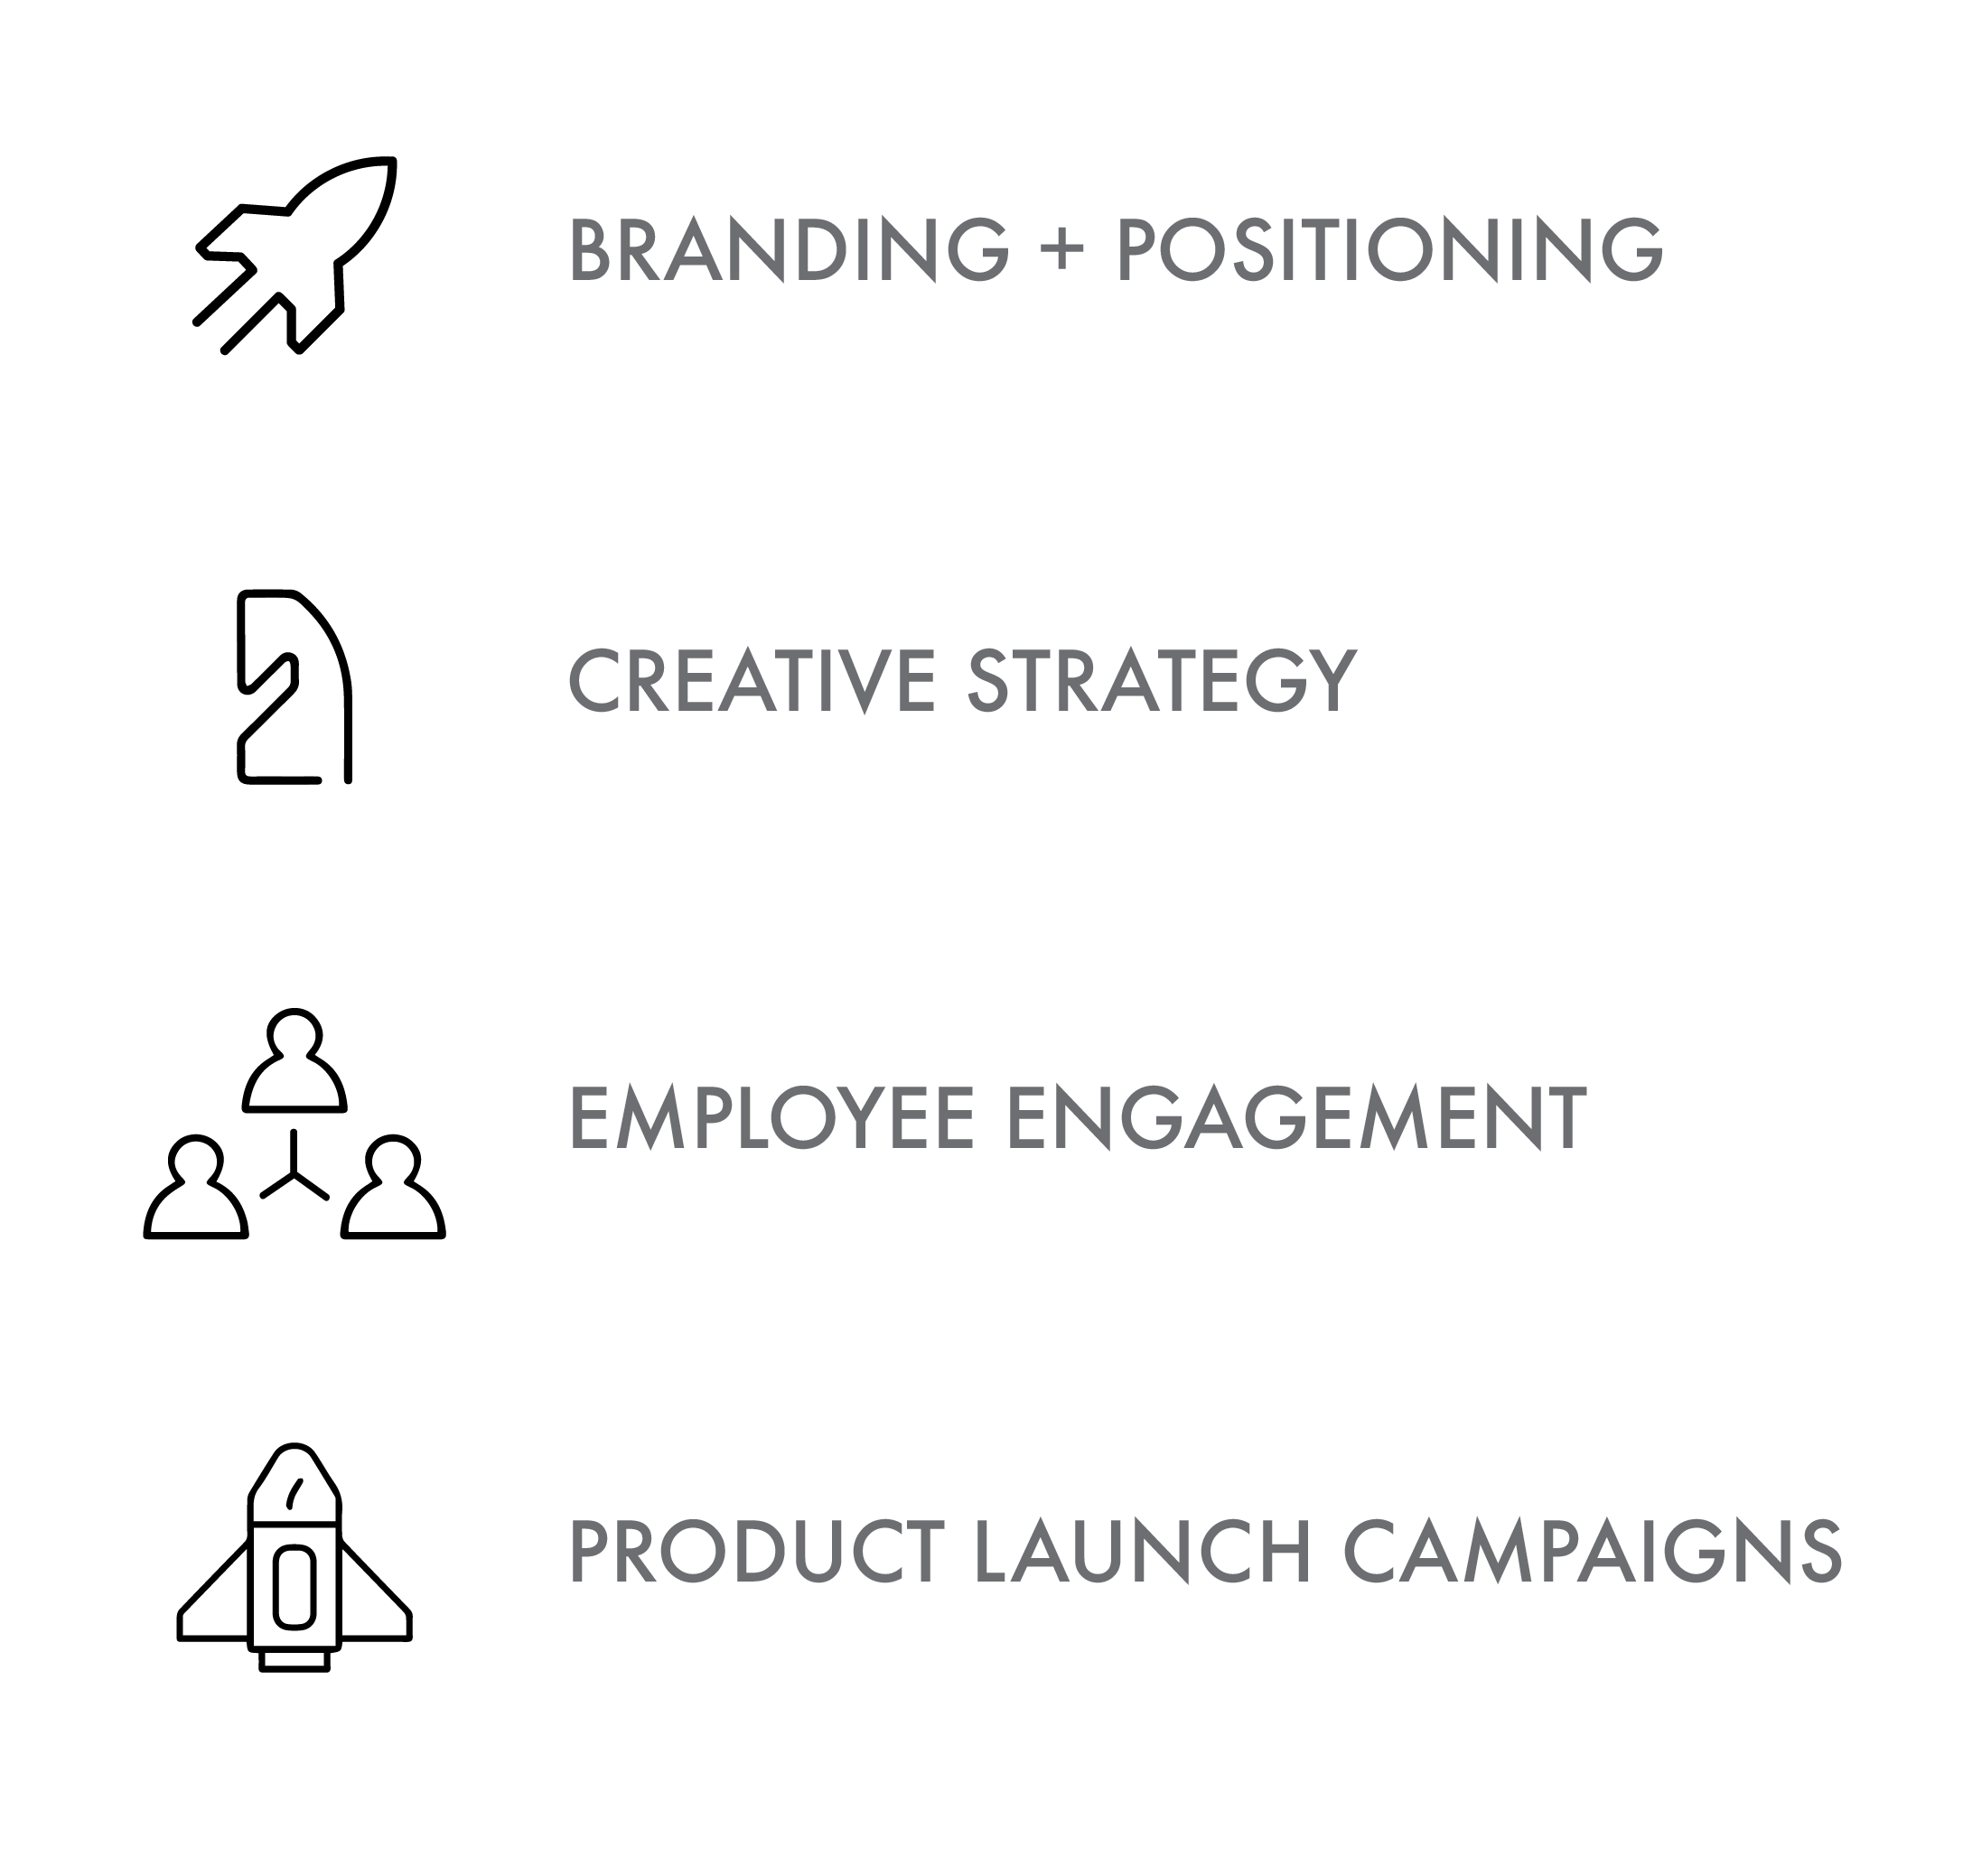 Manifesto-Icons-org-092618-08.png